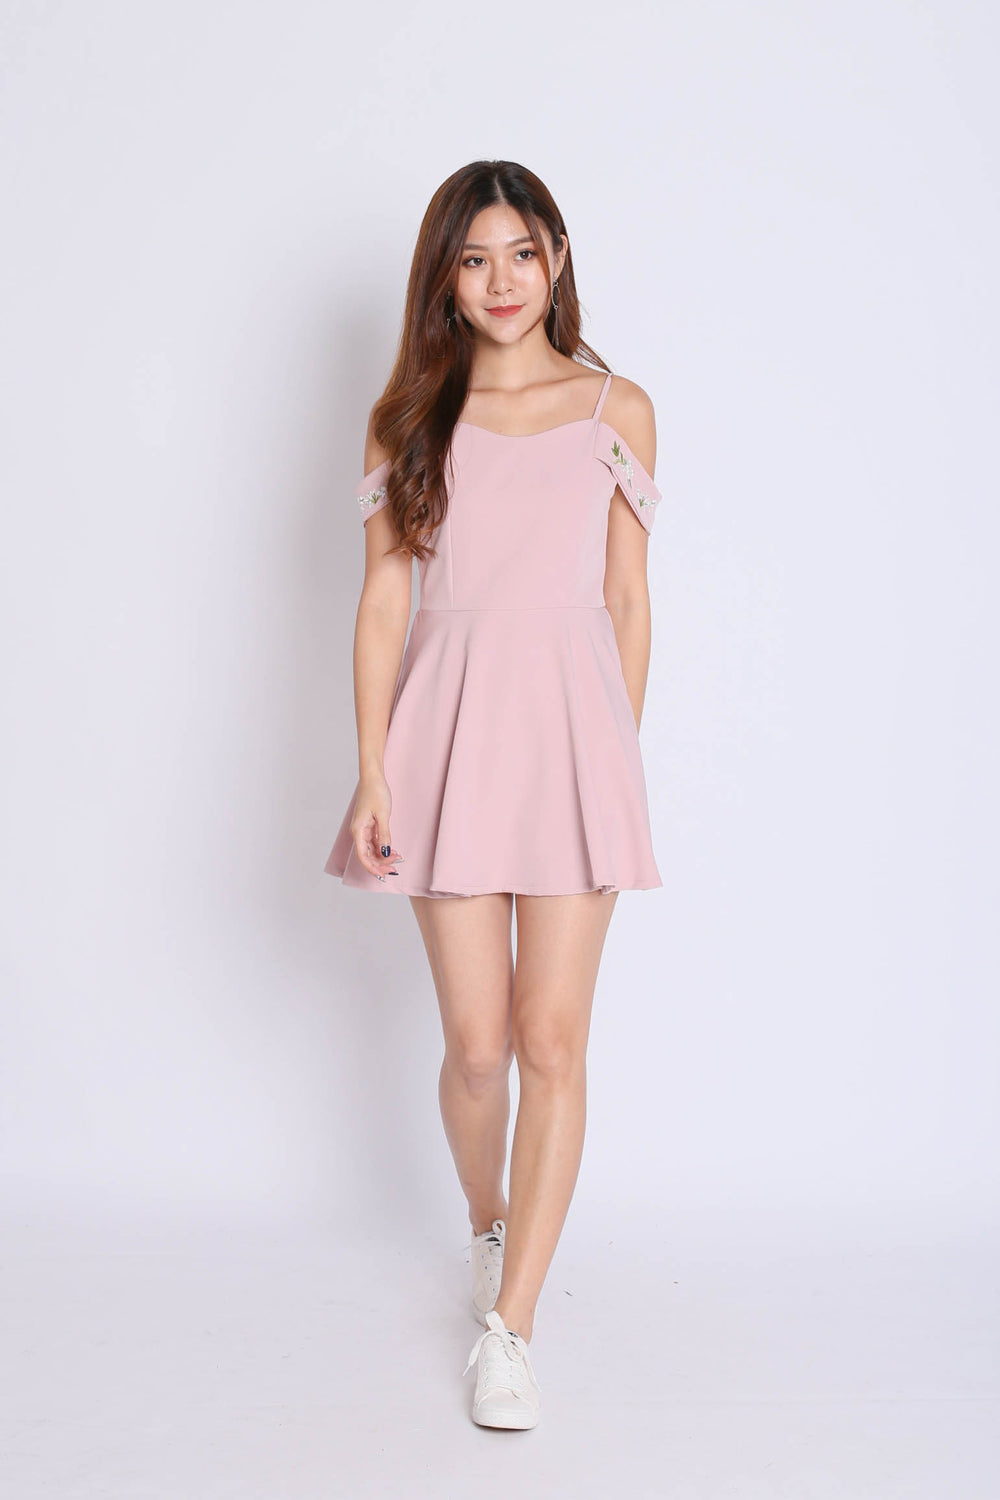 *TPZ* (PREMIUM) KAARI EMBROIDERY DRESS ROMPER IN DUSTY PINK